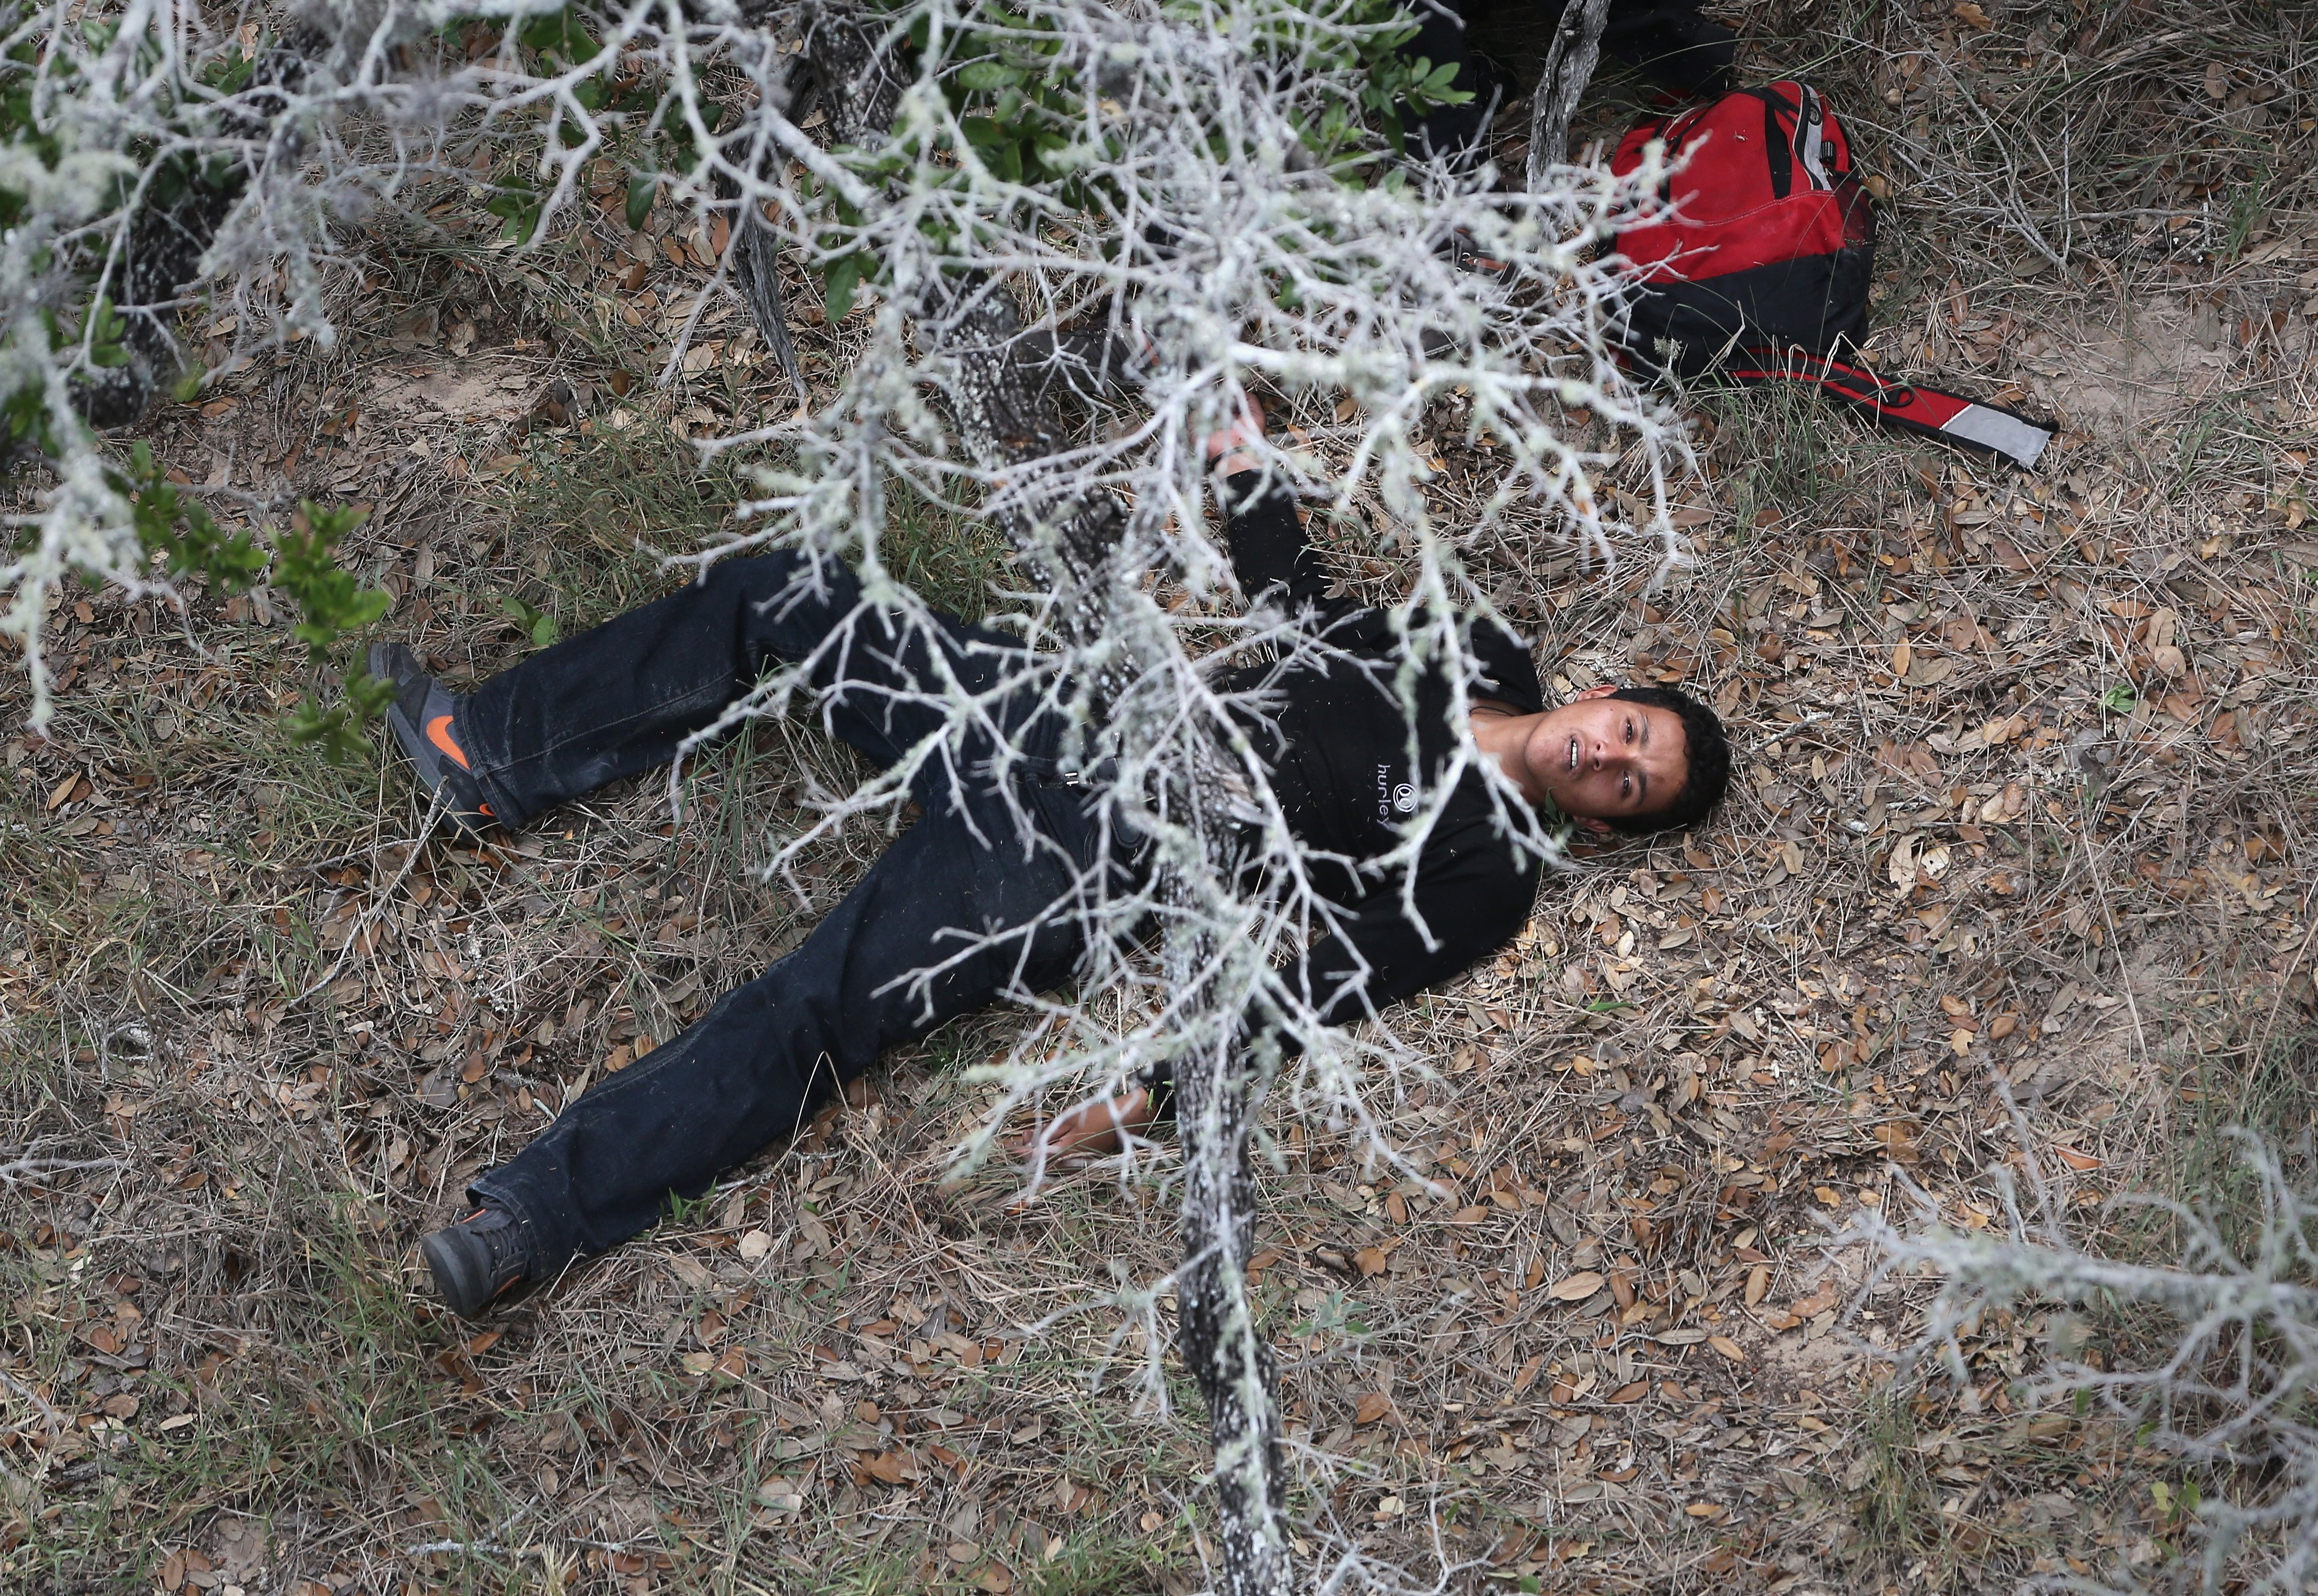 An undocumented immigrant awaits medical attention by U.S. Border Patrol agents some 60 miles north of the U.S.-Mexico border near Falfurrias, Texas on July 23, 2014.